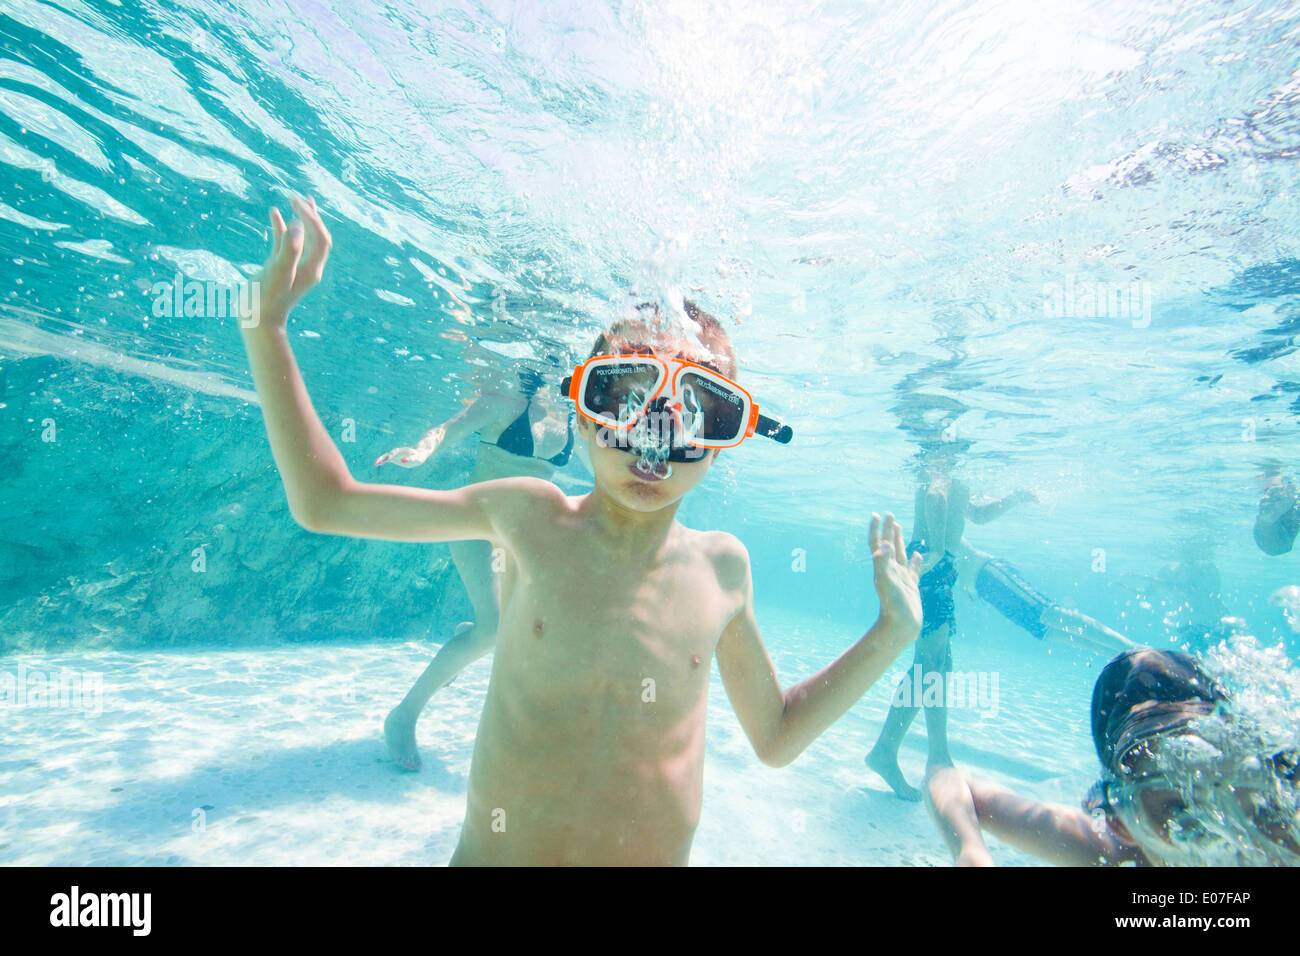 Little Boy Diving With Goggles In A Swimming Pool Hvar Island Stock Photo Royalty Free Image